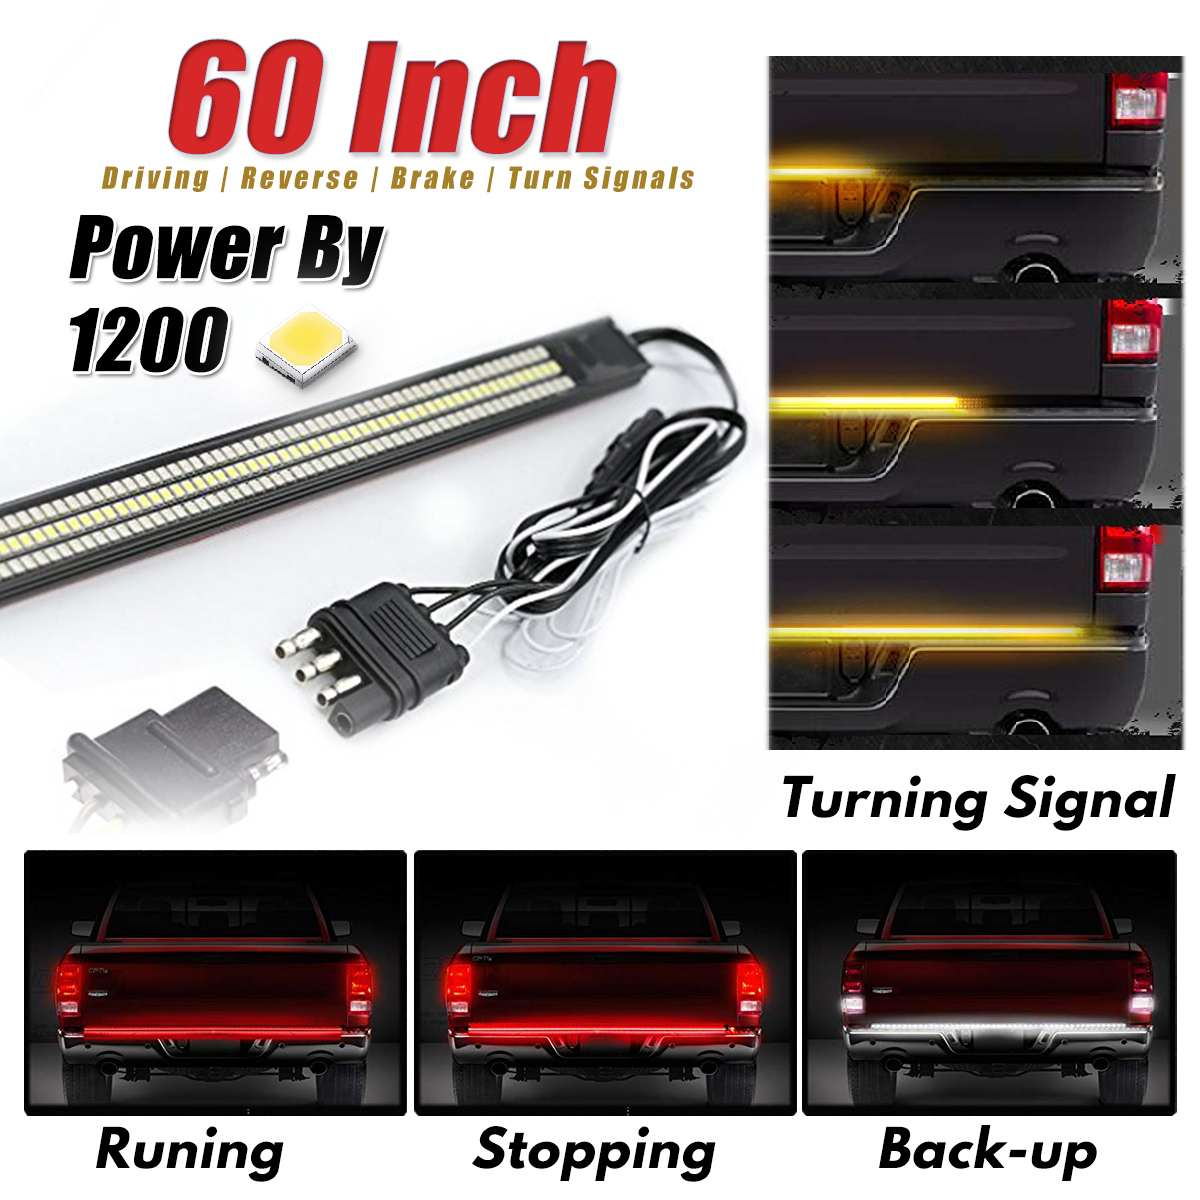 60 Universal Triple LED Aluminum Strip Tailgate Bar Red Driving Light Sequential Amber Turn Signal White Light Rigid Brake Rear60 Universal Triple LED Aluminum Strip Tailgate Bar Red Driving Light Sequential Amber Turn Signal White Light Rigid Brake Rear